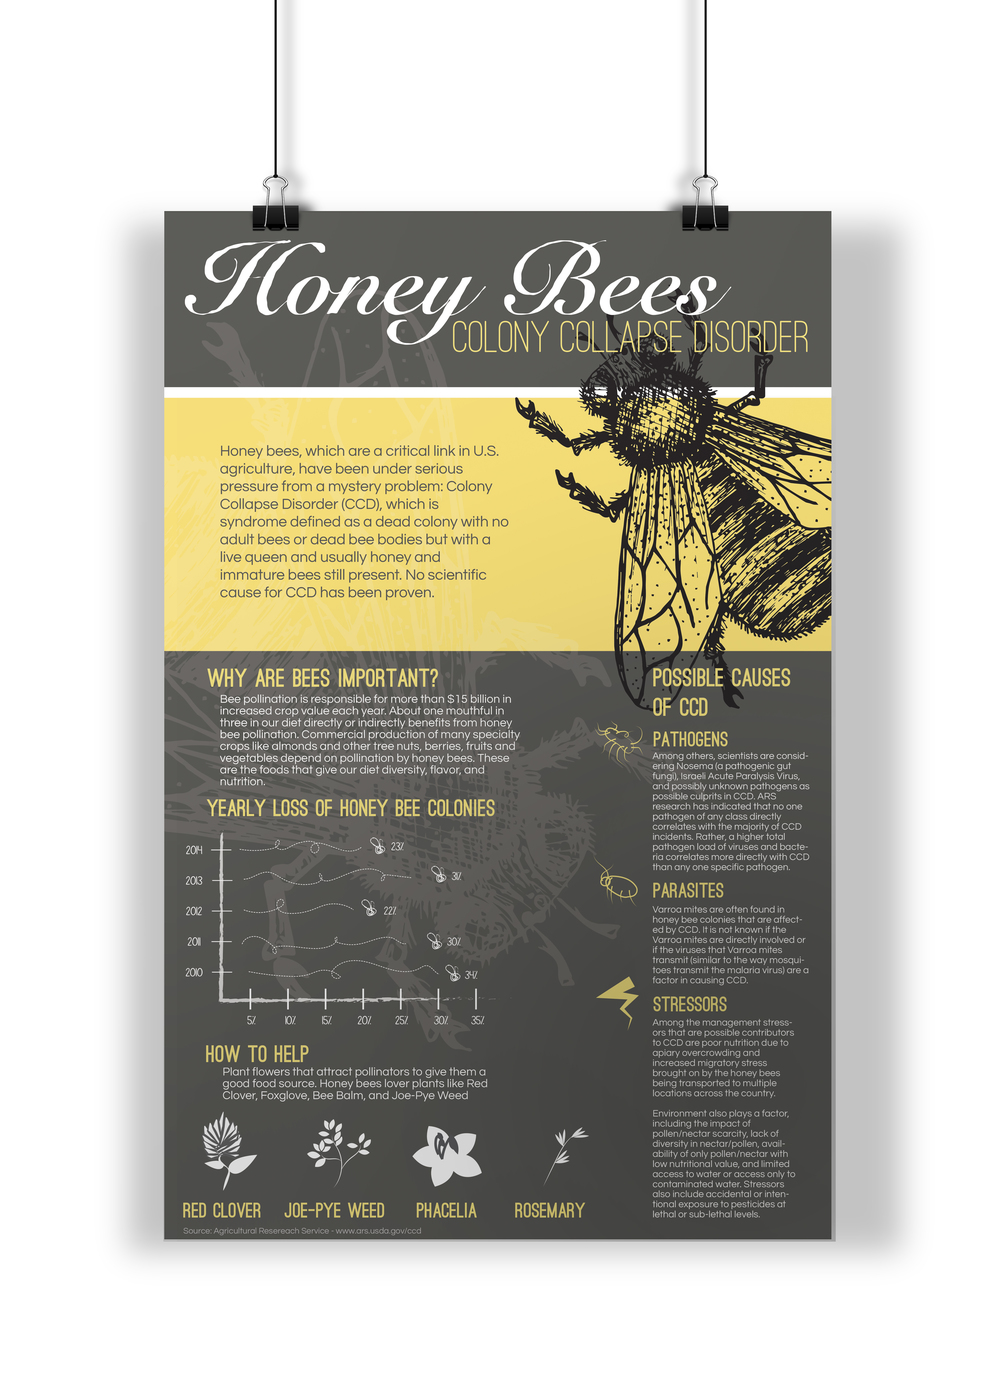 Honey Bees: Colony Collapse Disorder